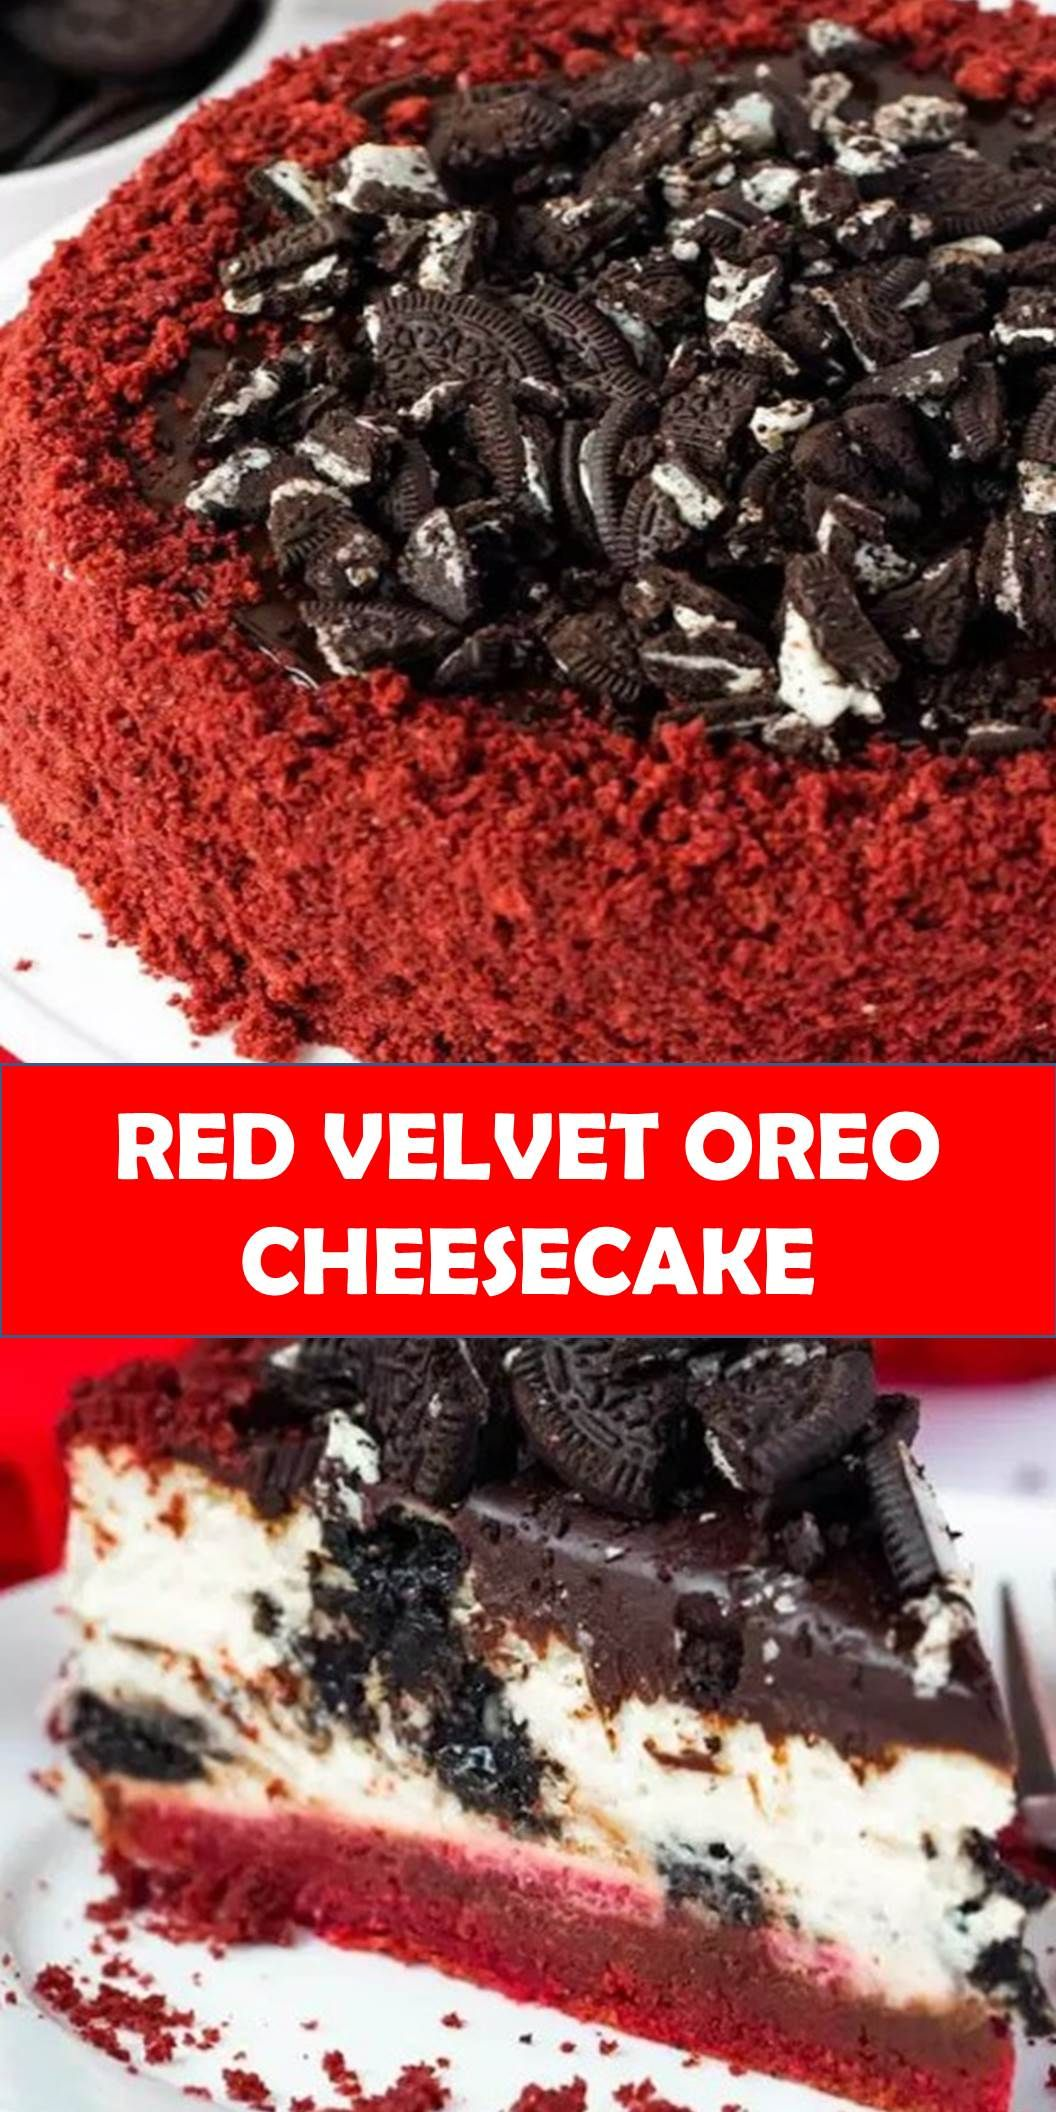 #DELICIOUS #RED #VELVET #OREO #CHEESECAKE Your family's favorite food and drink ! RED VELVET OREO CHEESECAKE This Red Velvet Oreo Cheesecake starts with a red velvet cake base and a creamy Oreo cheesecake filling that's topped with ganache, chopped Oreos and surrounded by moist red velvet cake crumbs! #Best #Vegas #Recipe! #BestVegasRecipe! #redvelvetcheesecake